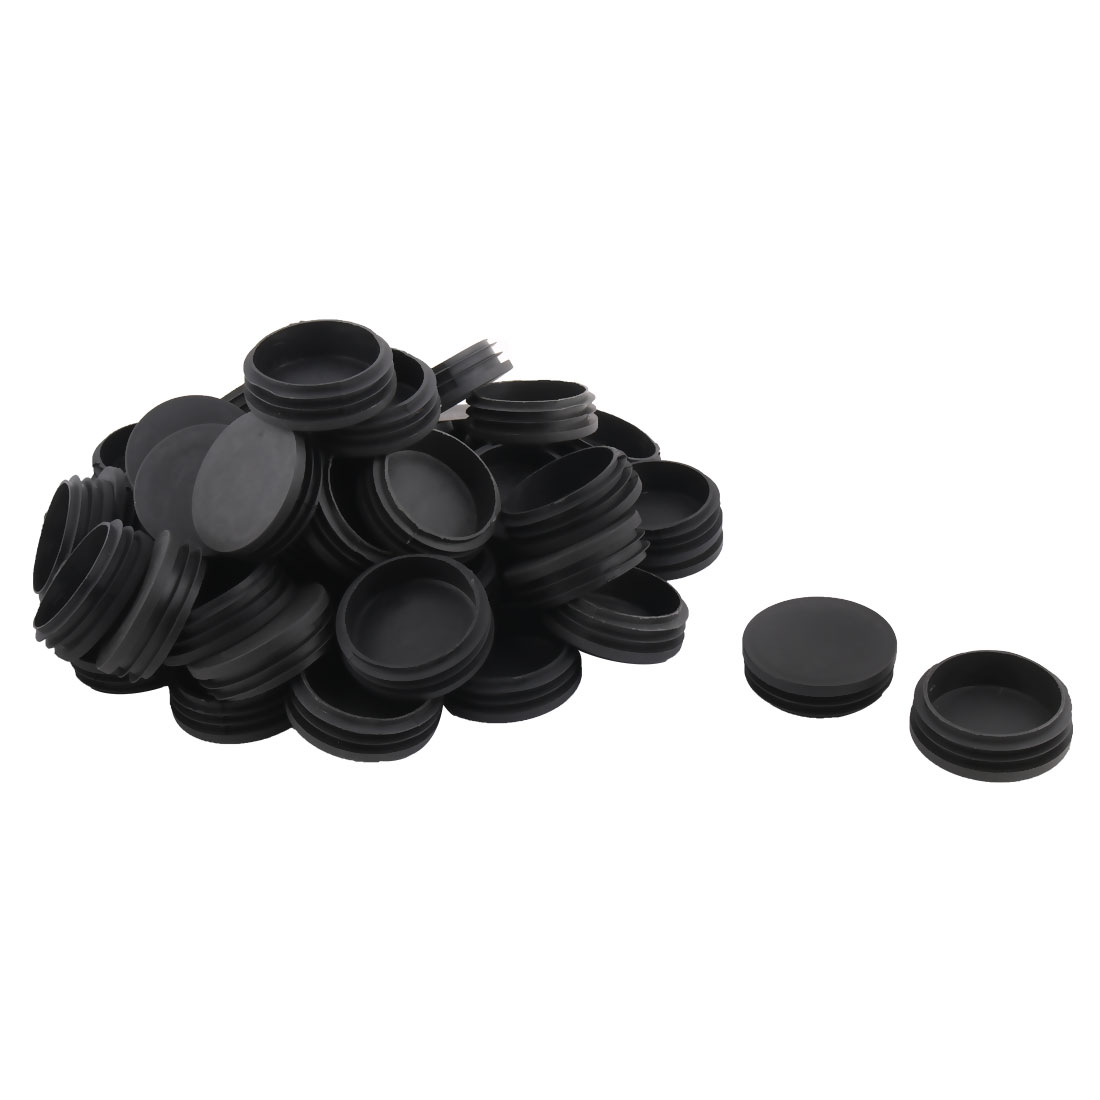 Desk Legs Plastic Round Design Tube Pipe Inserts End Blanking Caps Black 76mm Dia 50pcs